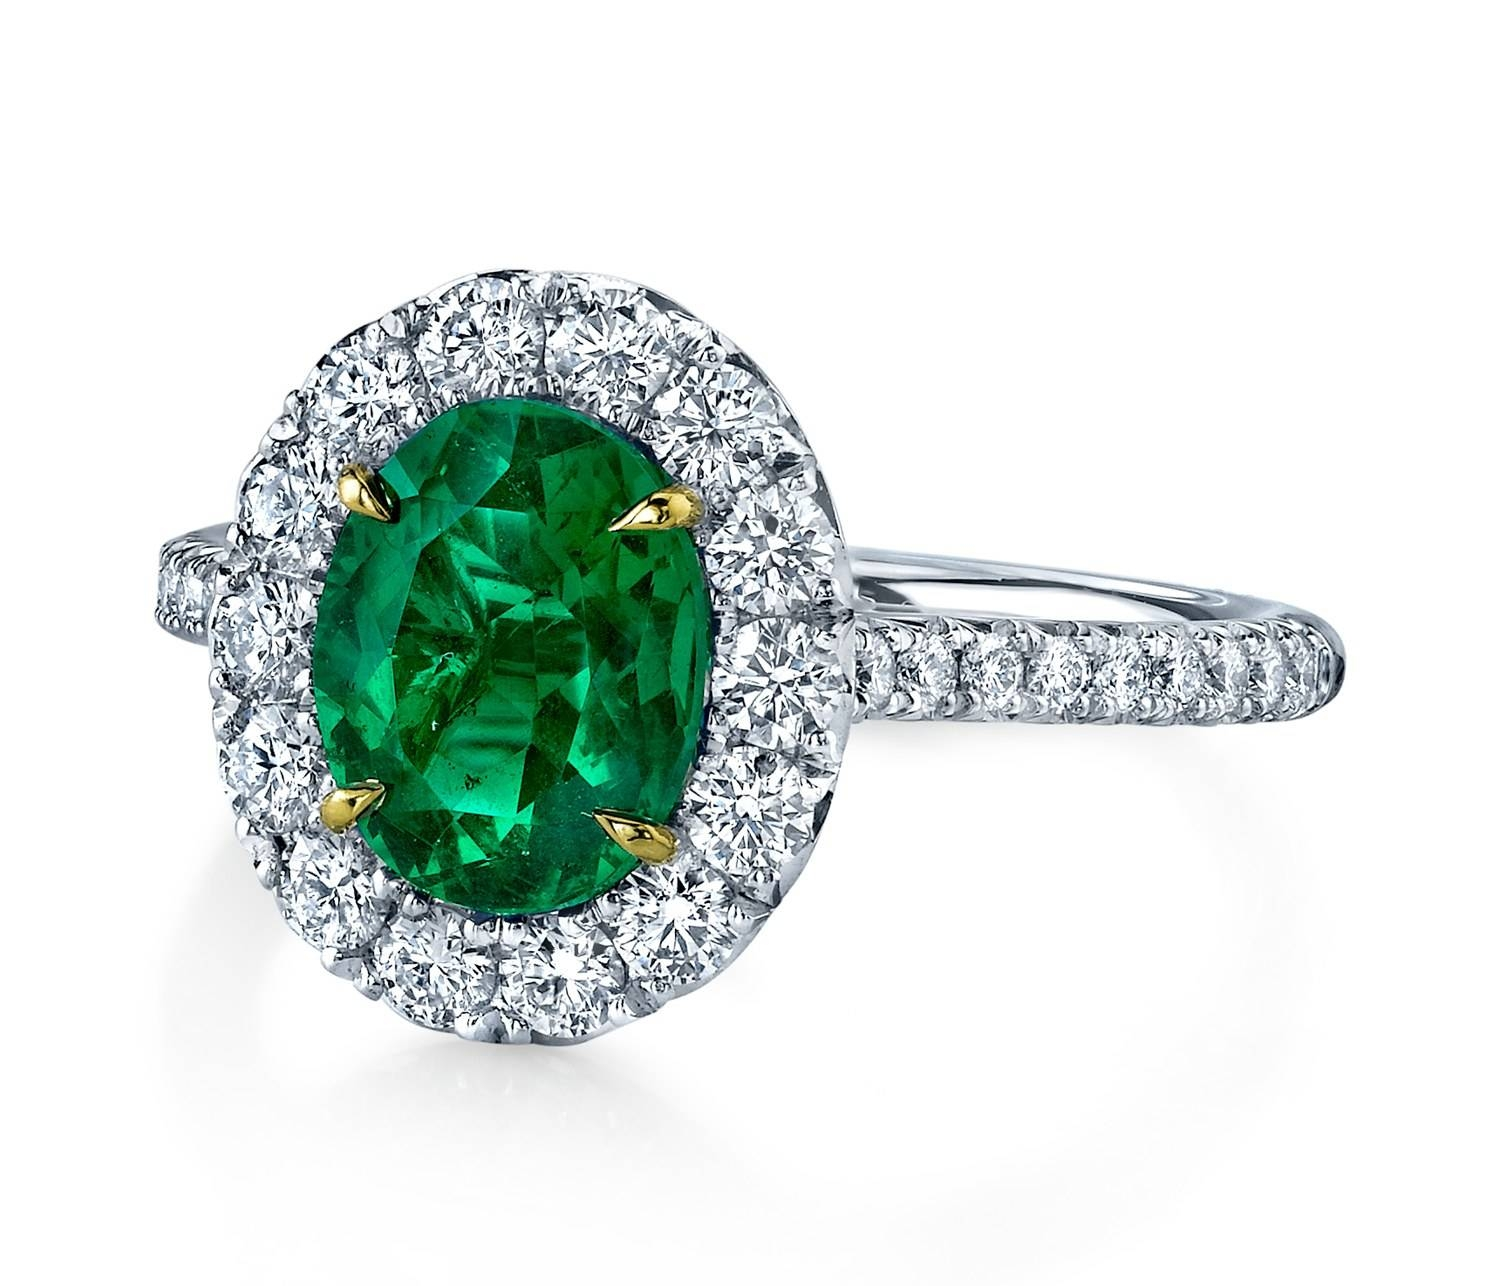 30 Diamond Engagement Rings So Sparkly You'll Need Sunglasses Within Emerald Engagement Rings (View 3 of 15)